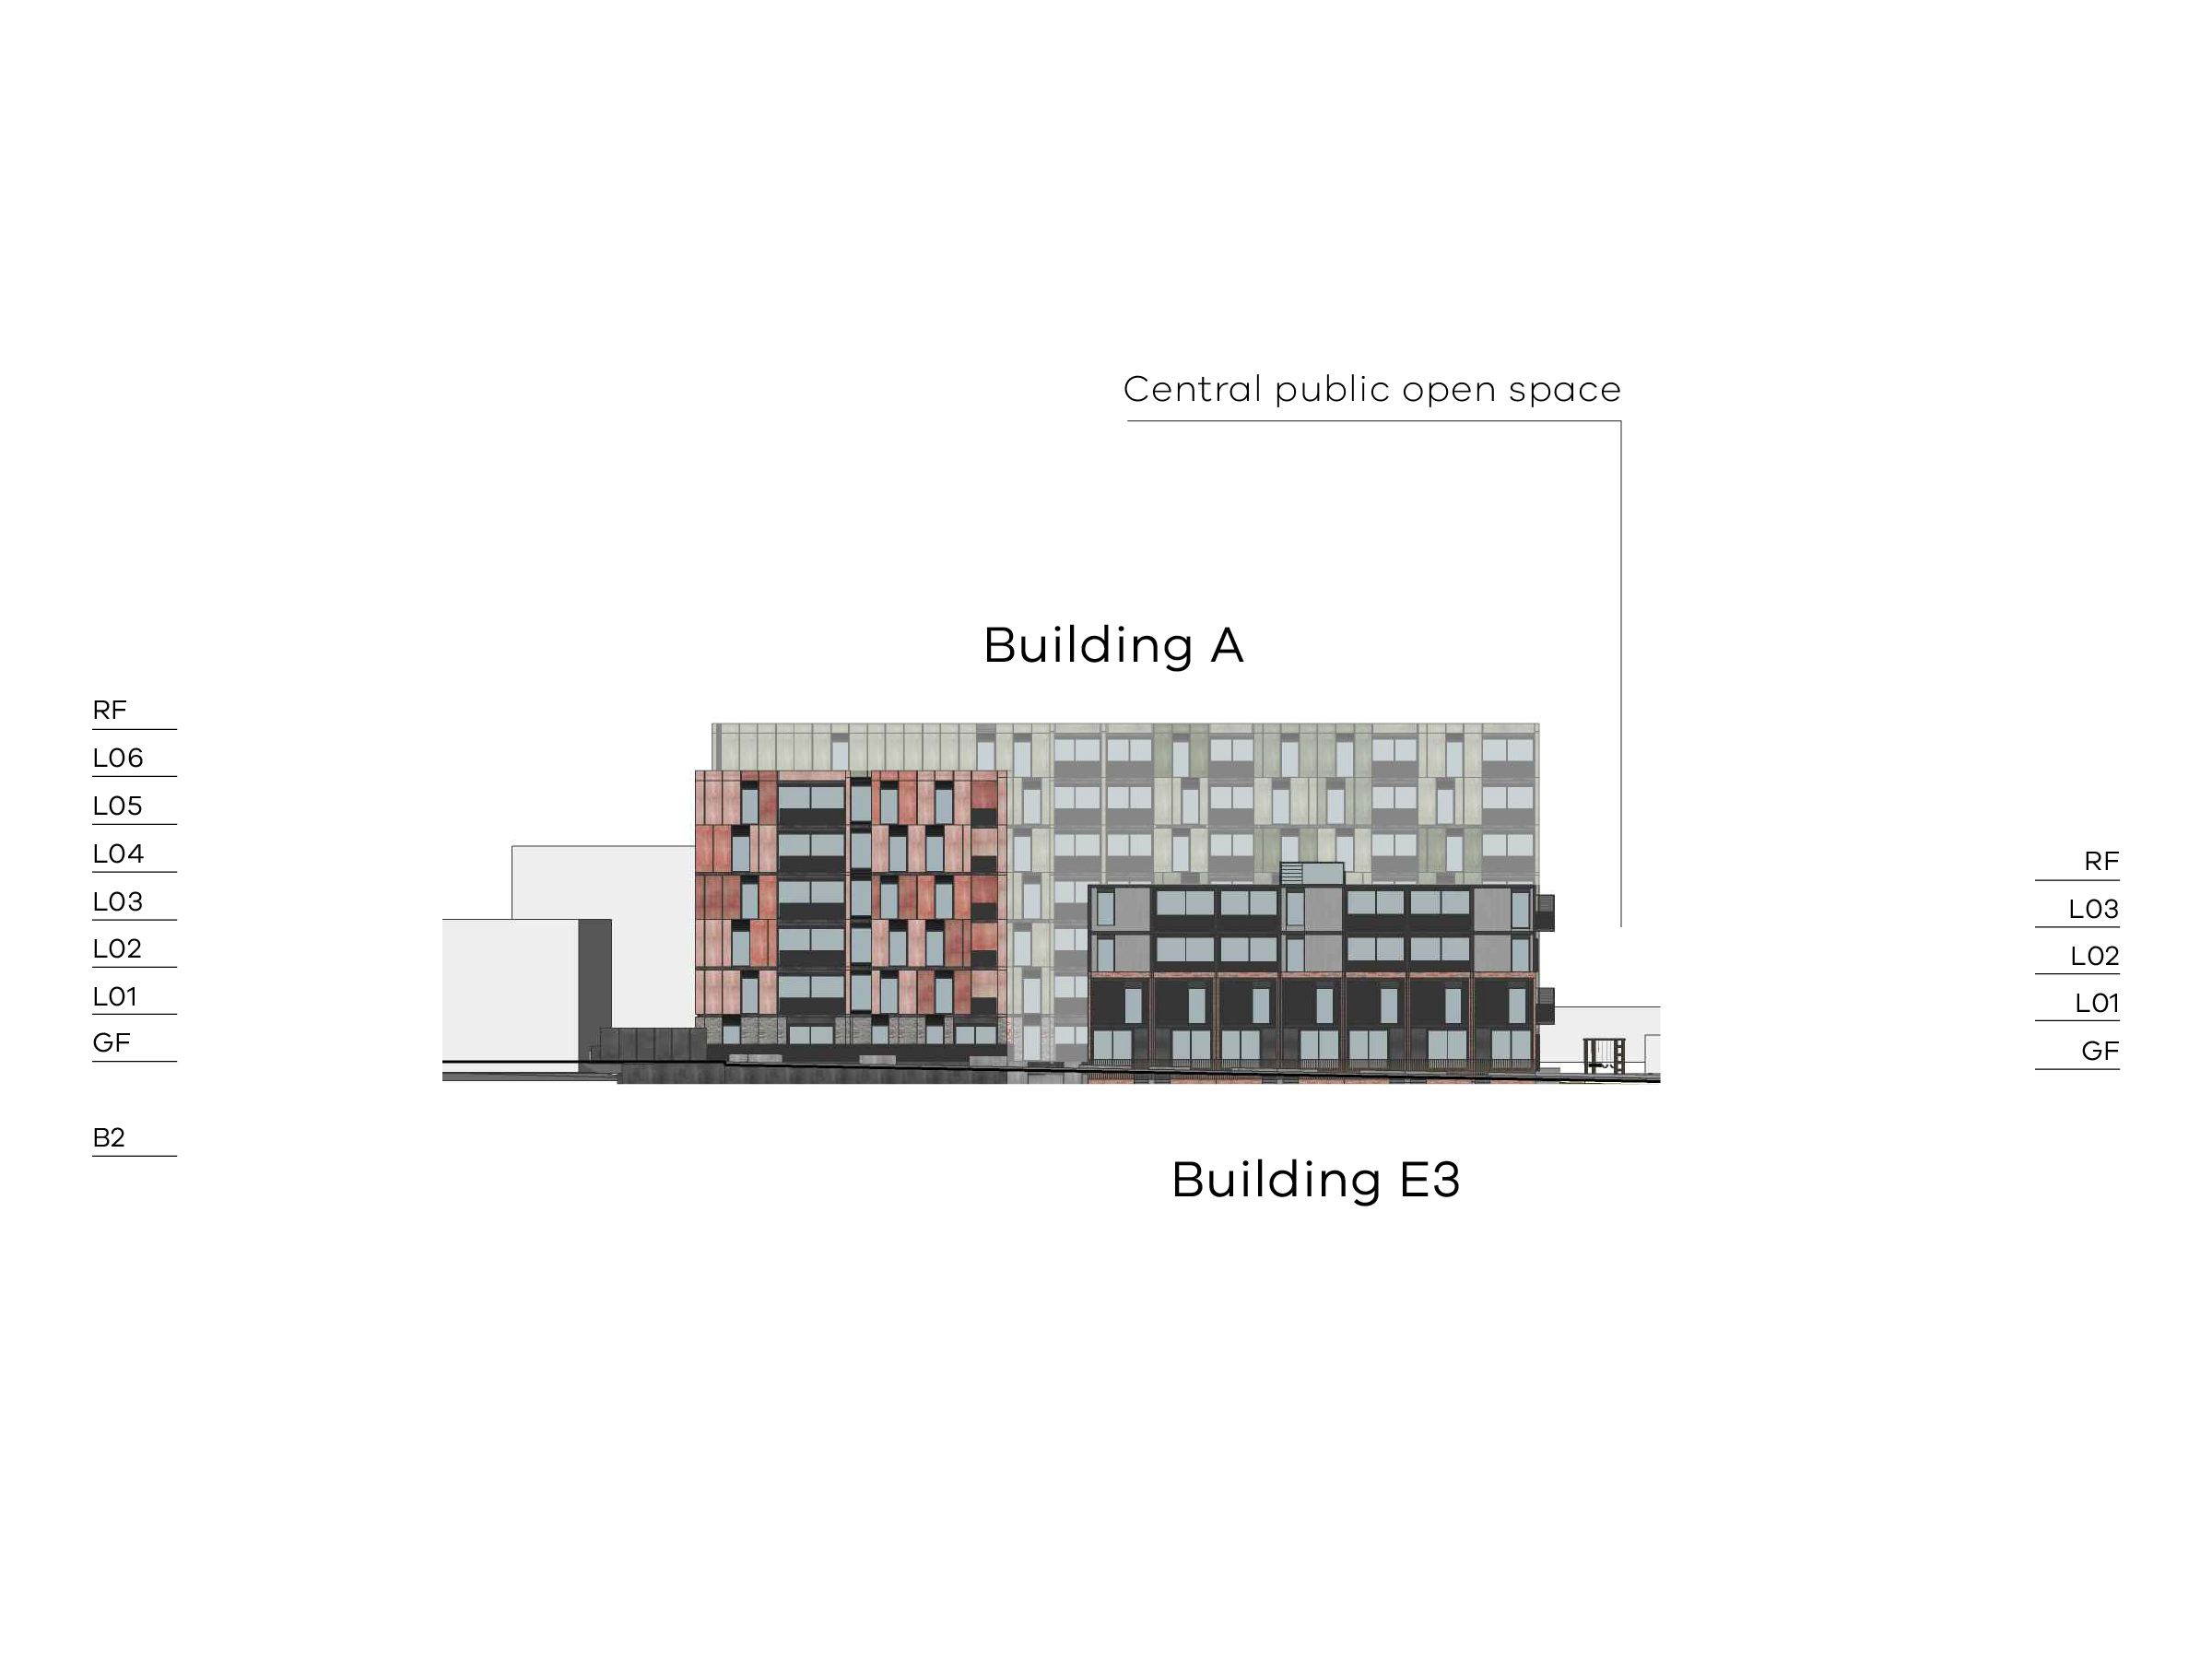 Diagram showing the heights of buildings A and E3 as seen from Bendigo Street, the rest of building A can be seen behind E3. Building A on Bendigo Street has a basement, a ground floor, level 1-5 and a flat roof. The part of building A behind E3 has a level 6 and flat roof. Building E3 has a ground floor, level 1-3 and a flat roof.